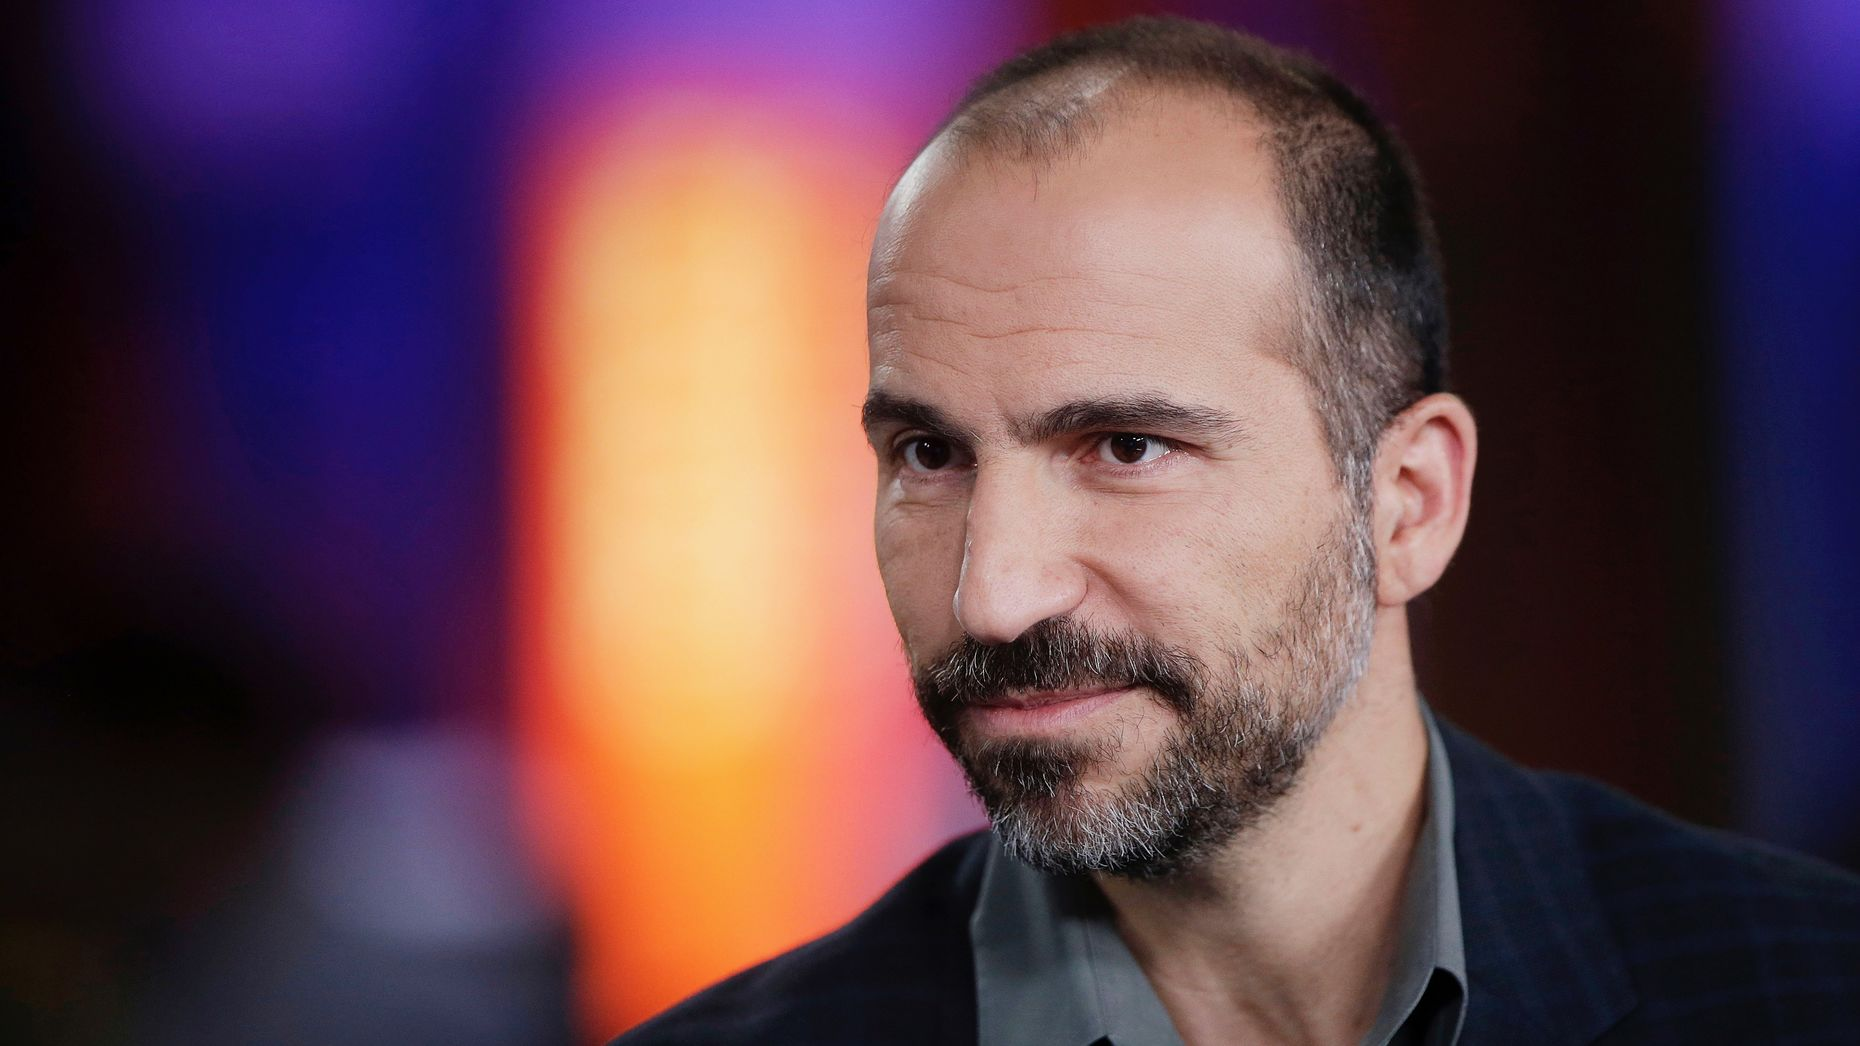 Uber CEO Dara Khosrowshahi. Photo by Bloomberg. Charts by Mike Sullivan.